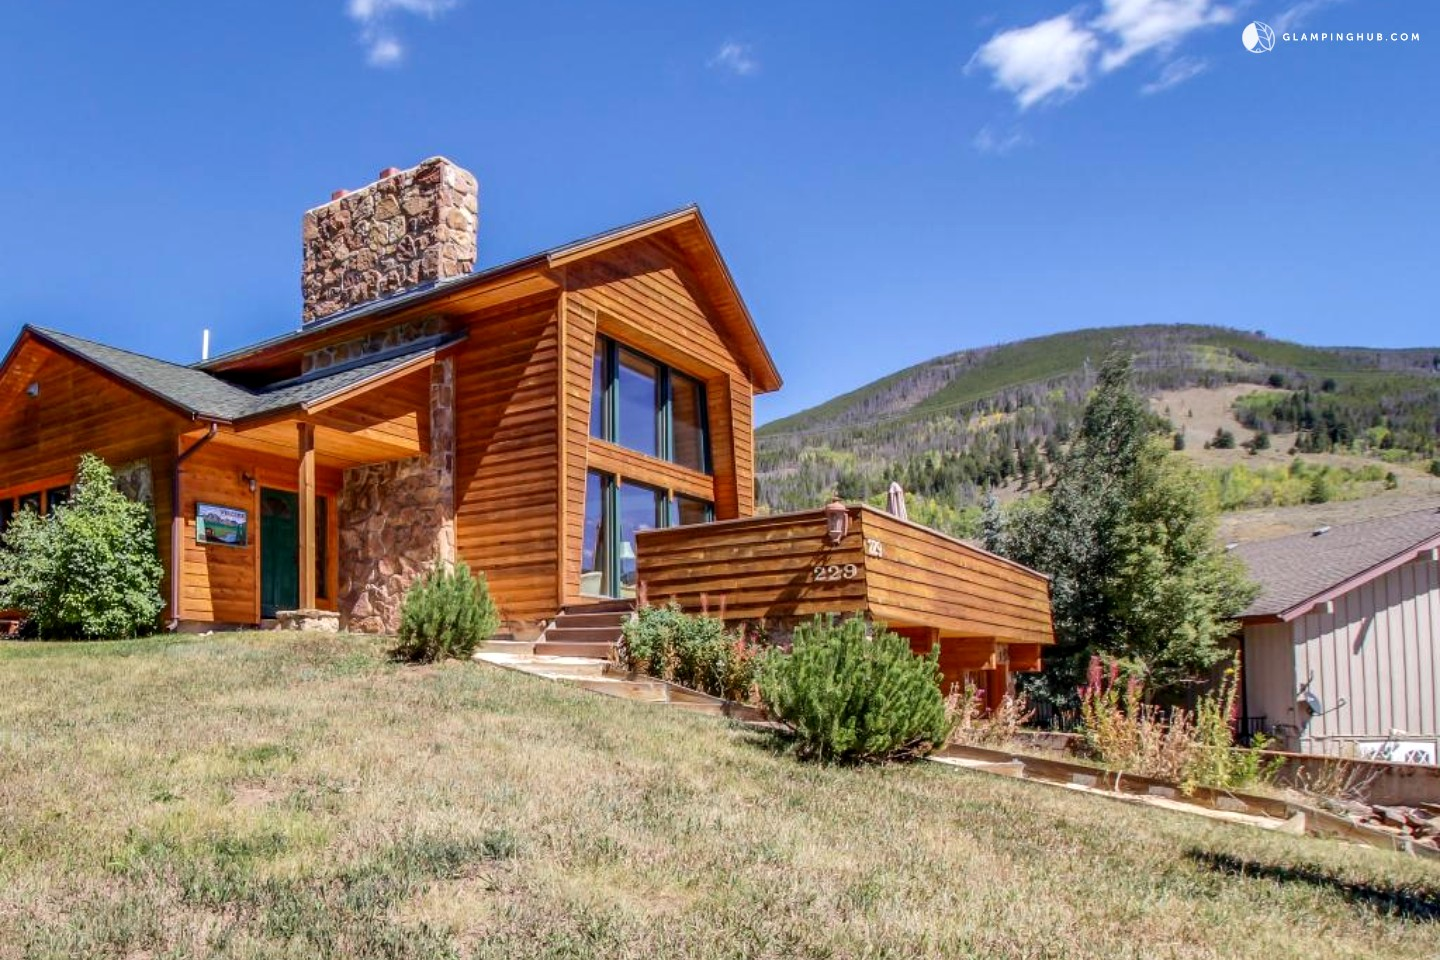 Cabin on lake dillon in keystone colorado for Cabin rentals near denver colorado